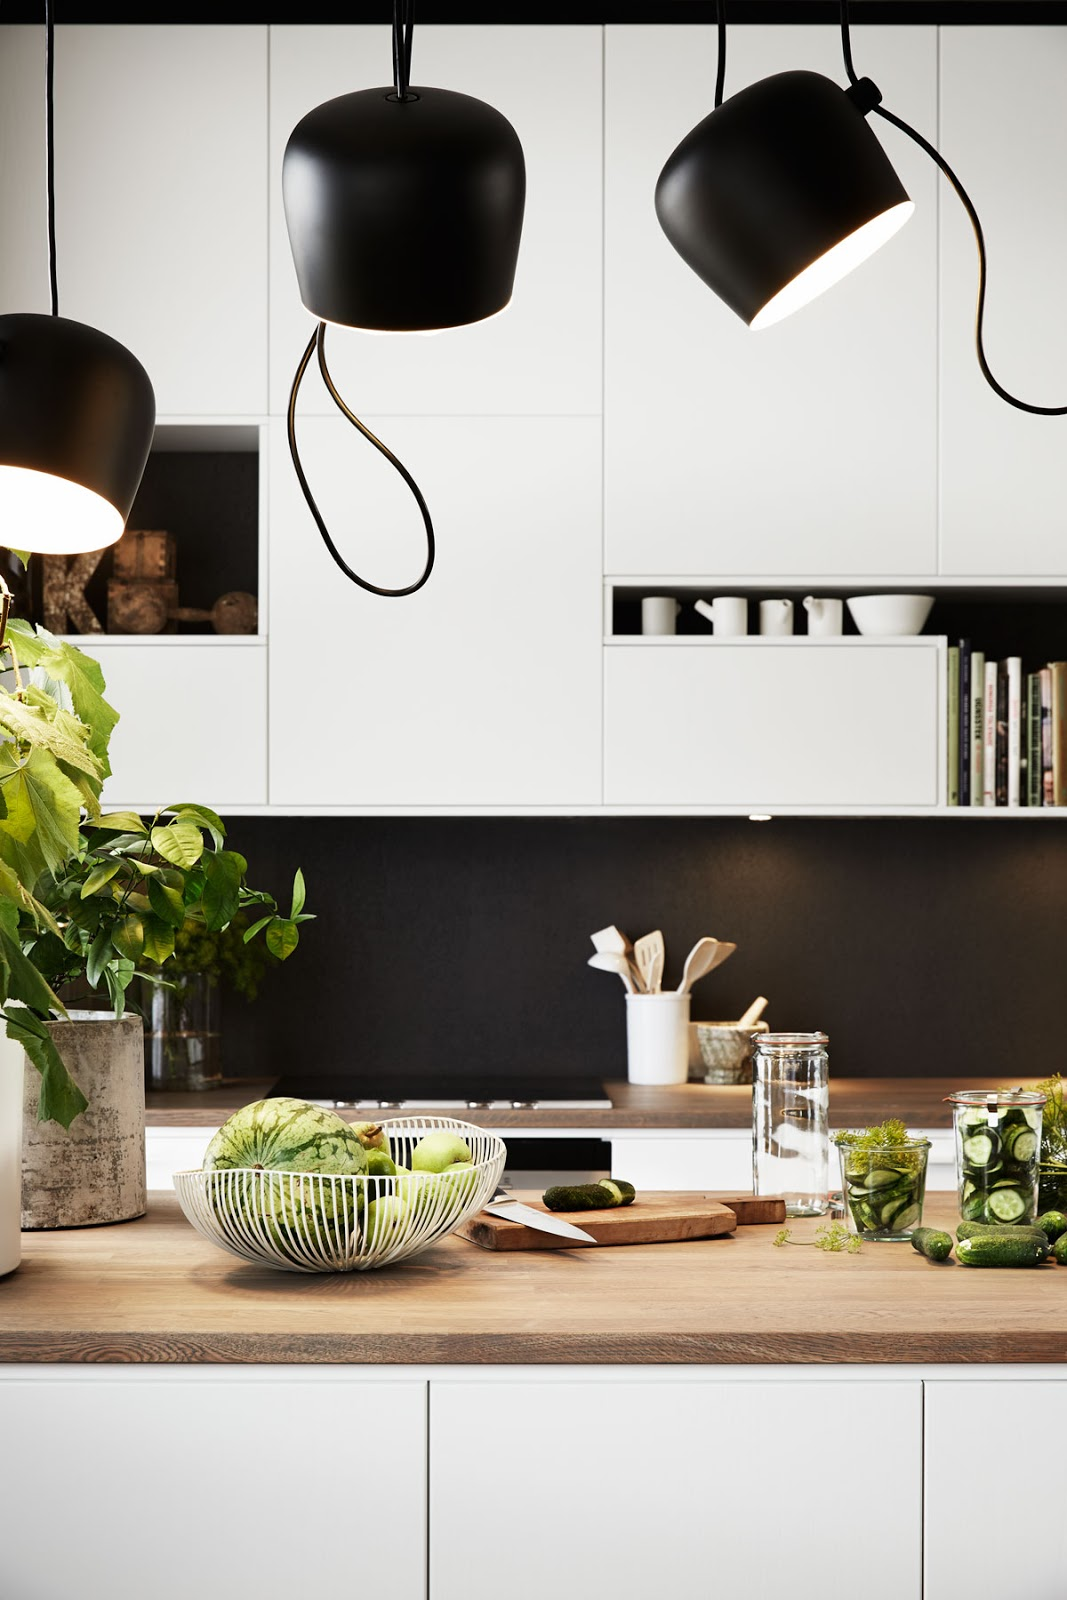 Flos Led Verlichting Design Love: Flos Aim Lamp | Nordic Days - By Flor Linckens